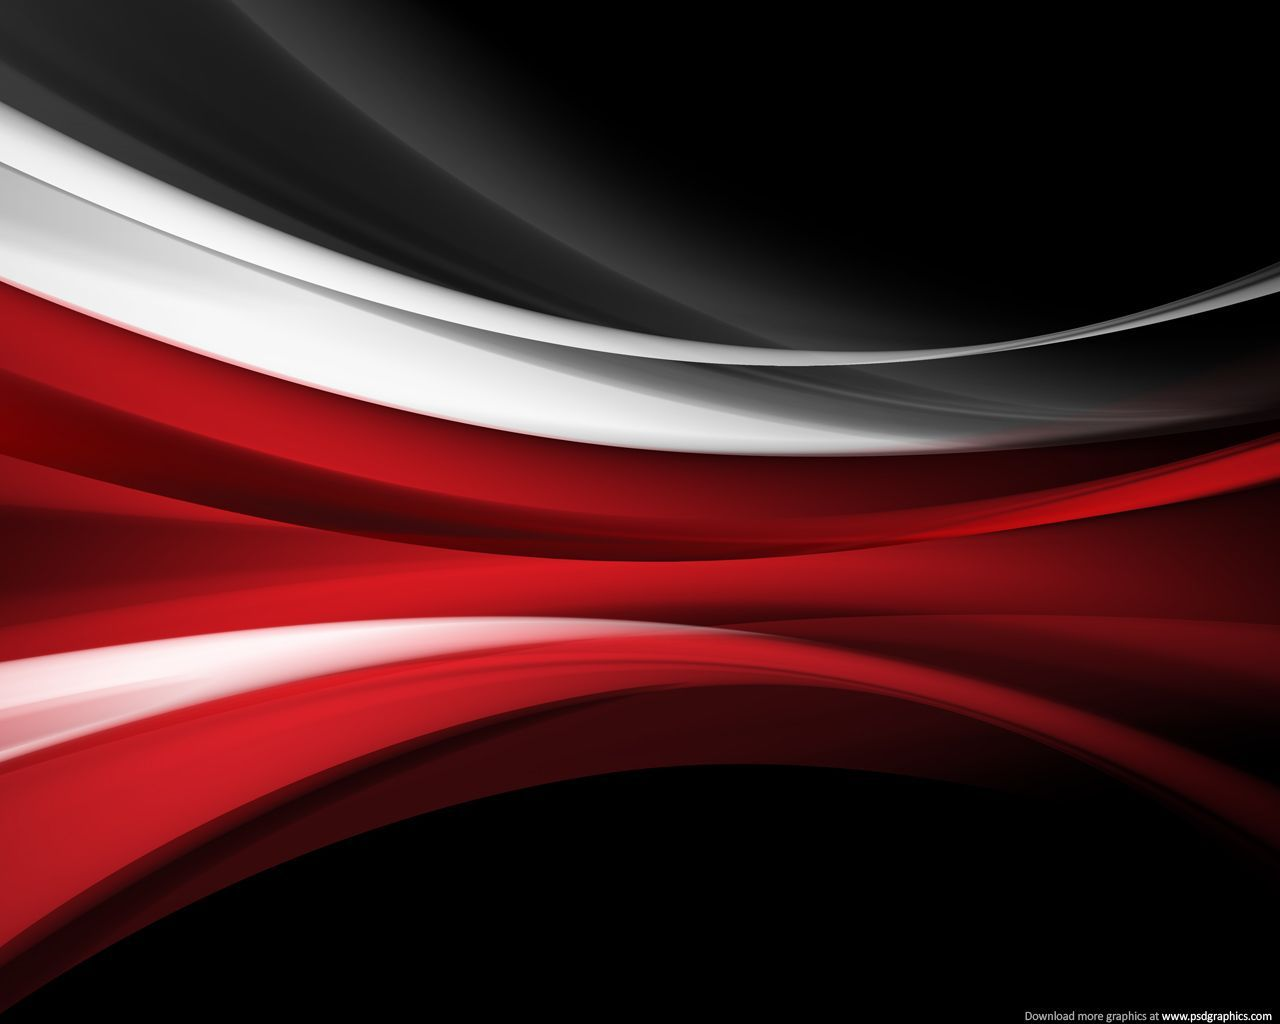 Black & Red Backgrounds Group (65+)